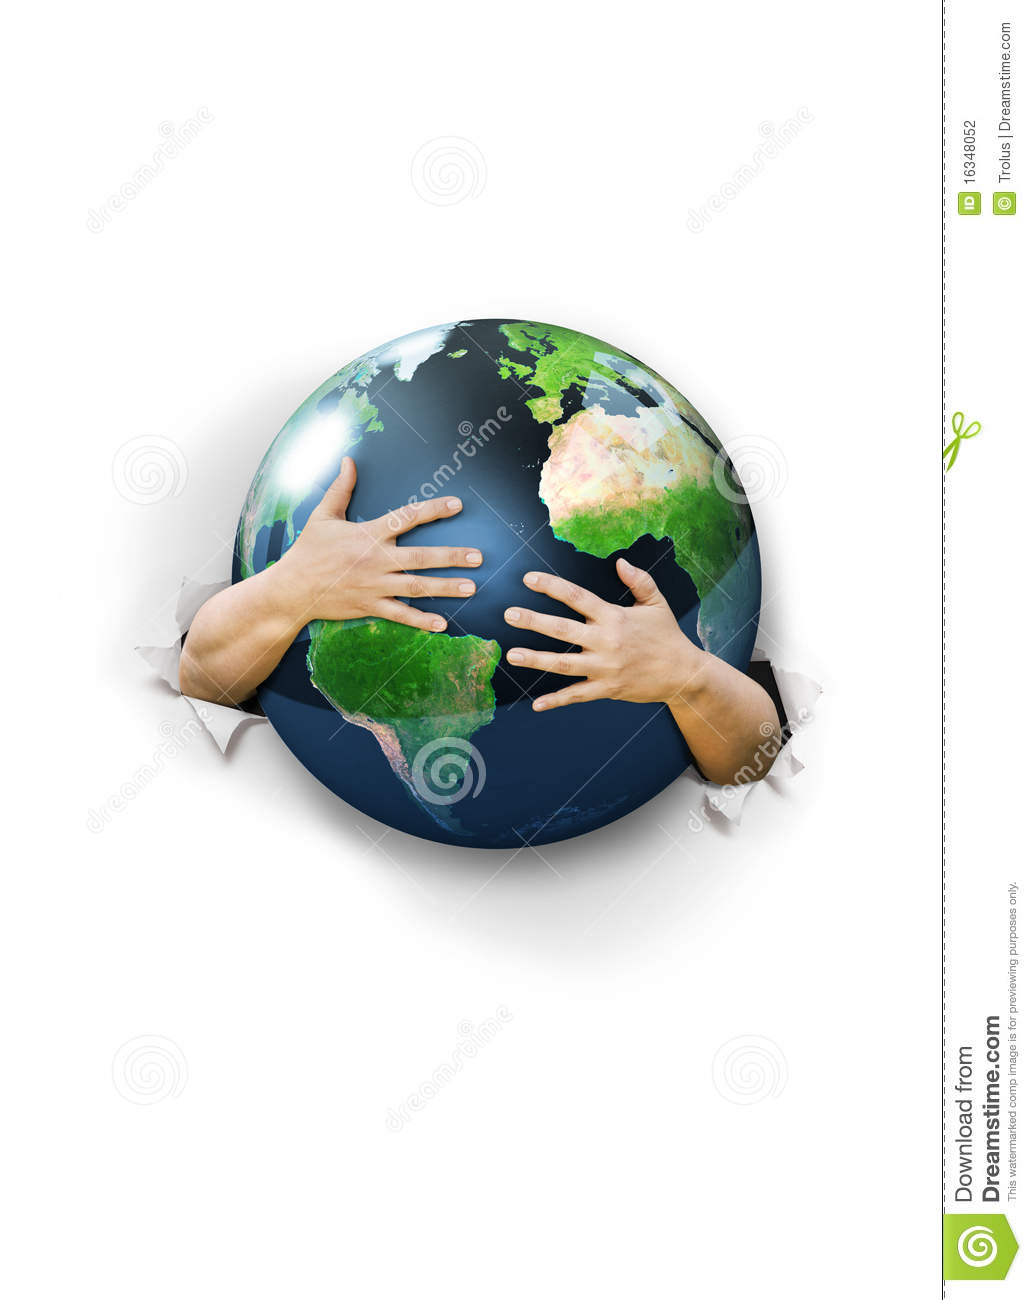 http://thumbs.dreamstime.com/z/hug-earth-16348052.jpg